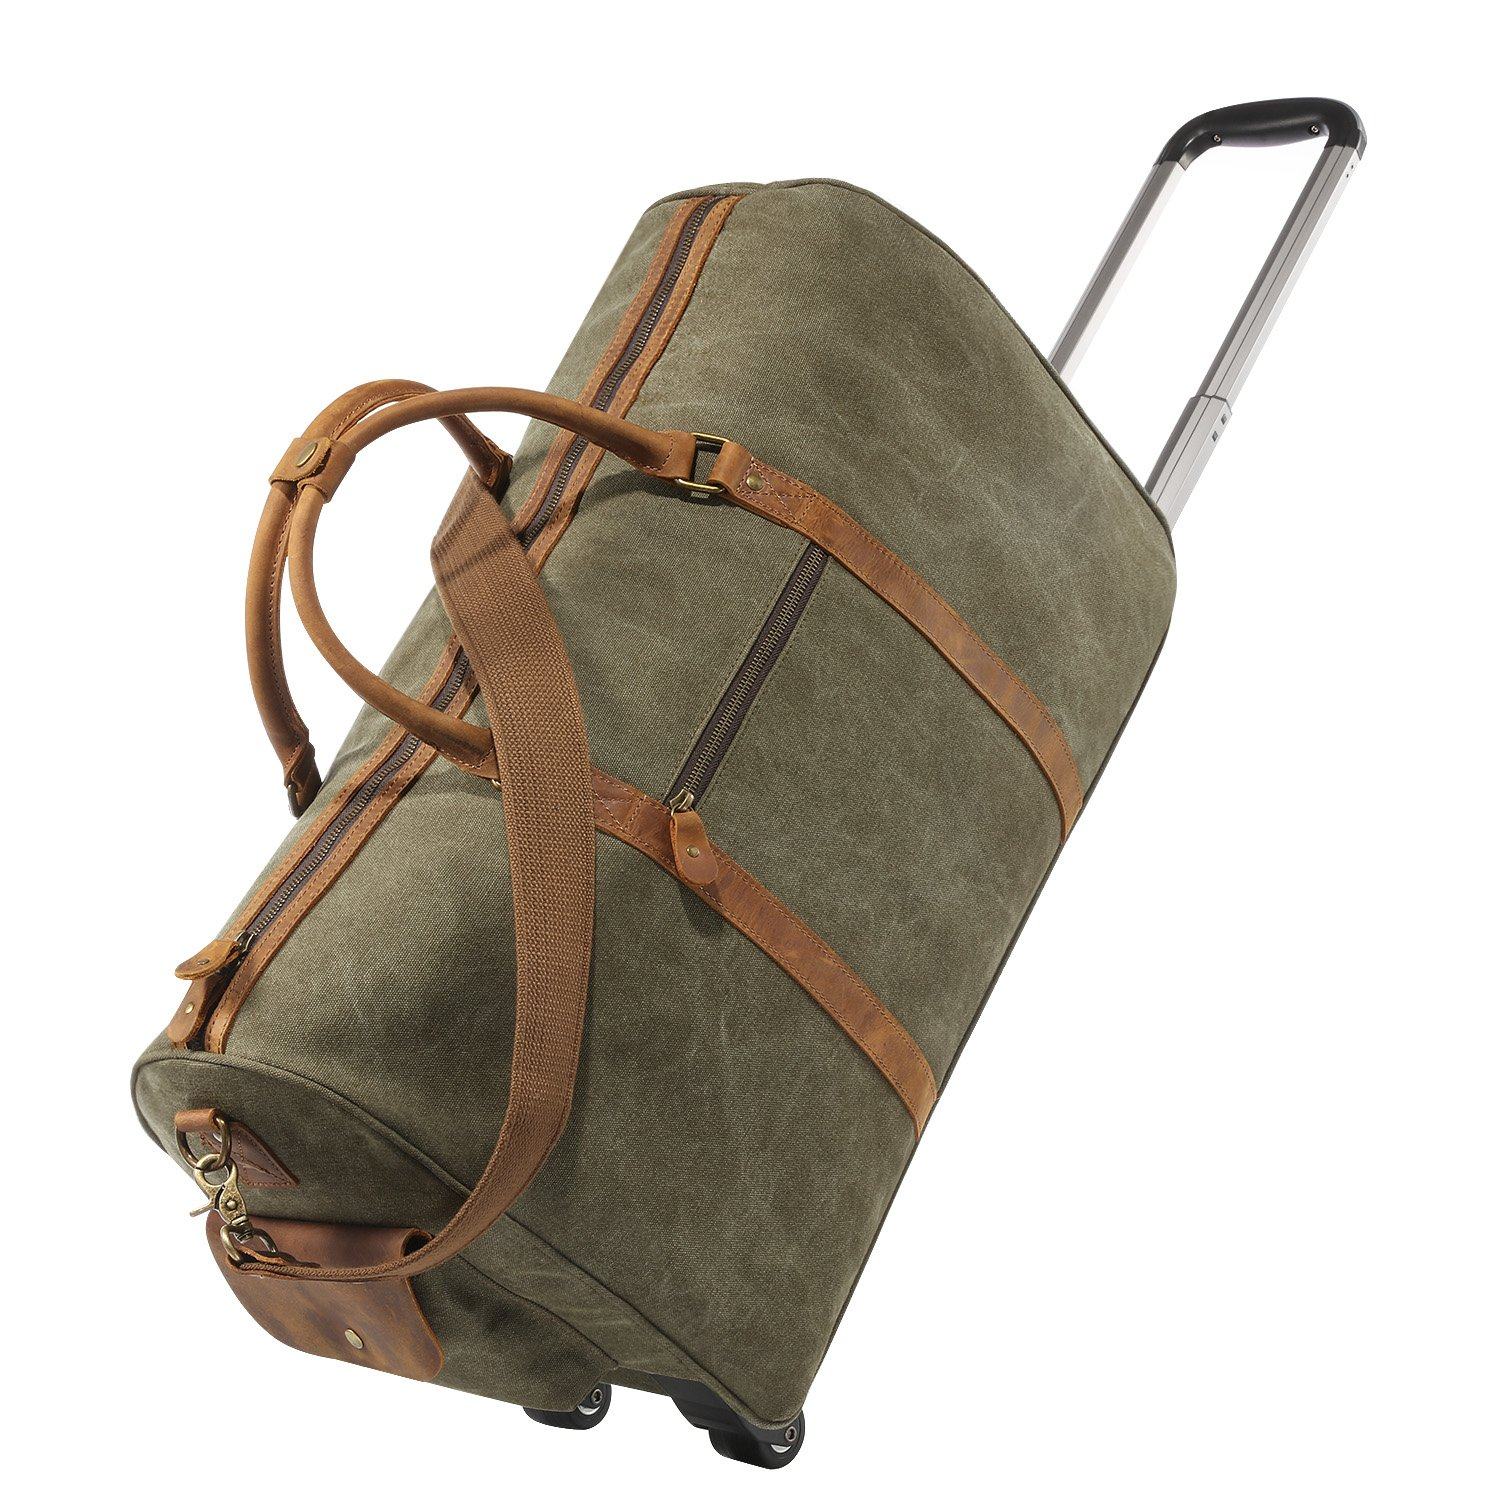 a999bd0b55 Kattee Oversized Canvas Leather Trim Wheeled Duffle Bag Travel Holdall  Weekend Tote (Army Green)  Amazon.co.uk  Clothing